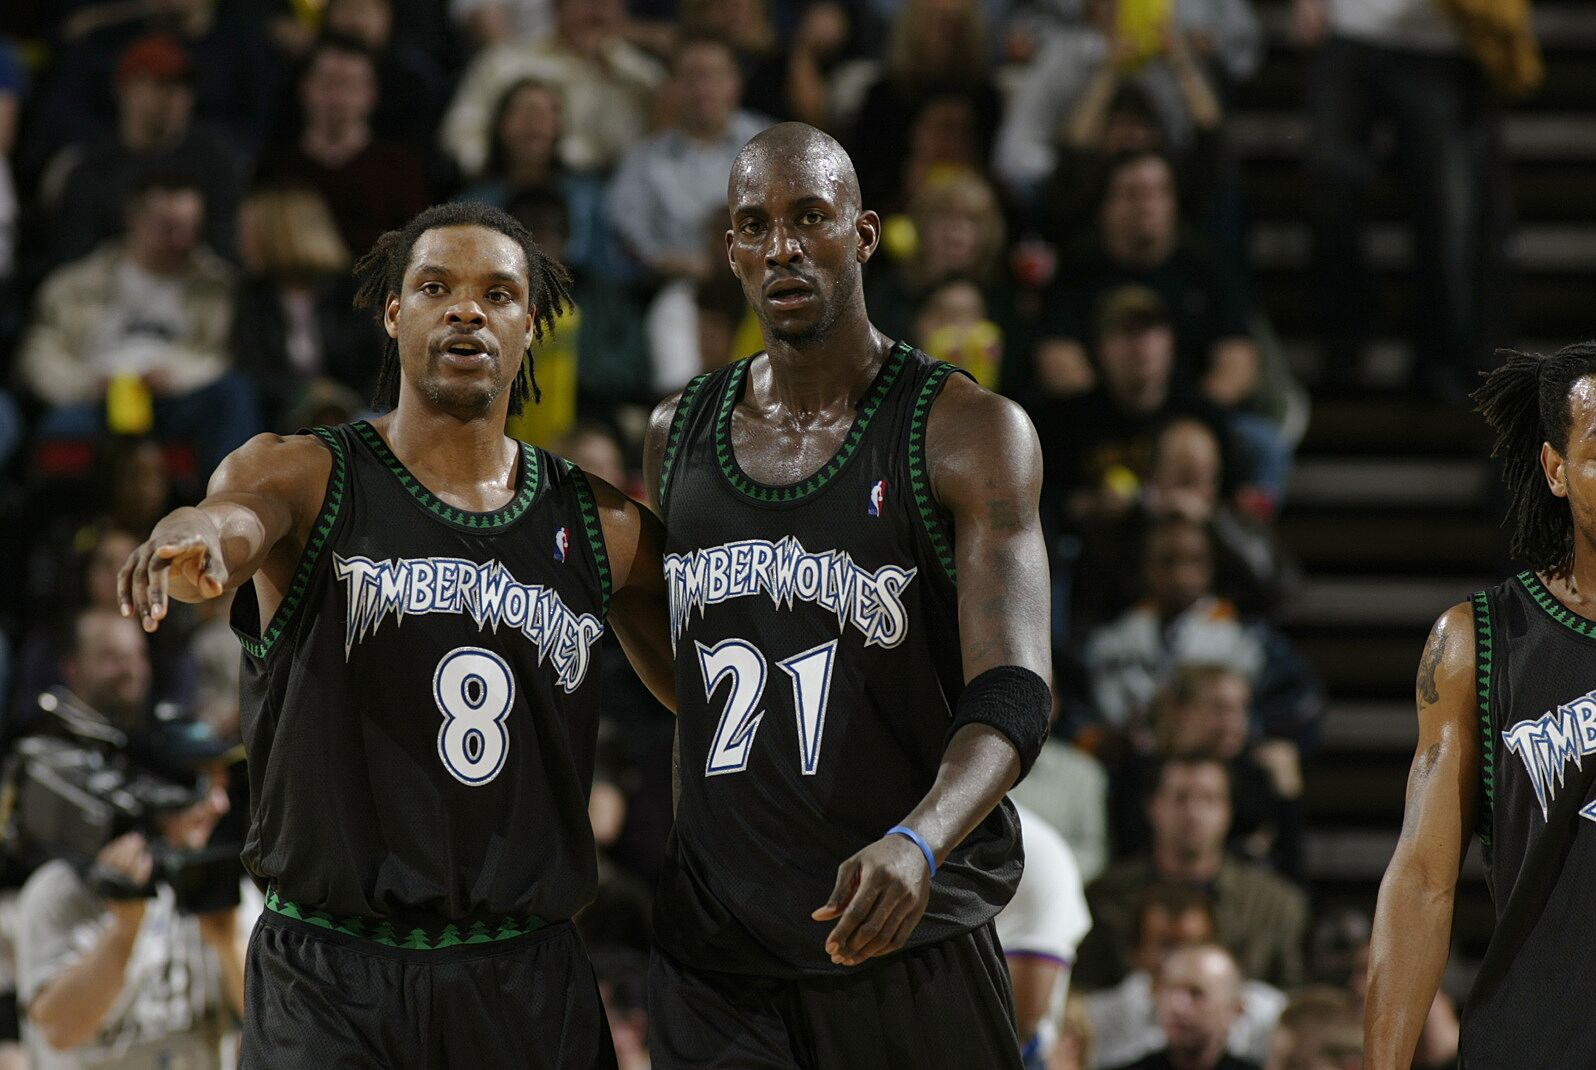 Minnesota Timberwolves 5 Best Jersey Designs In Franchise History